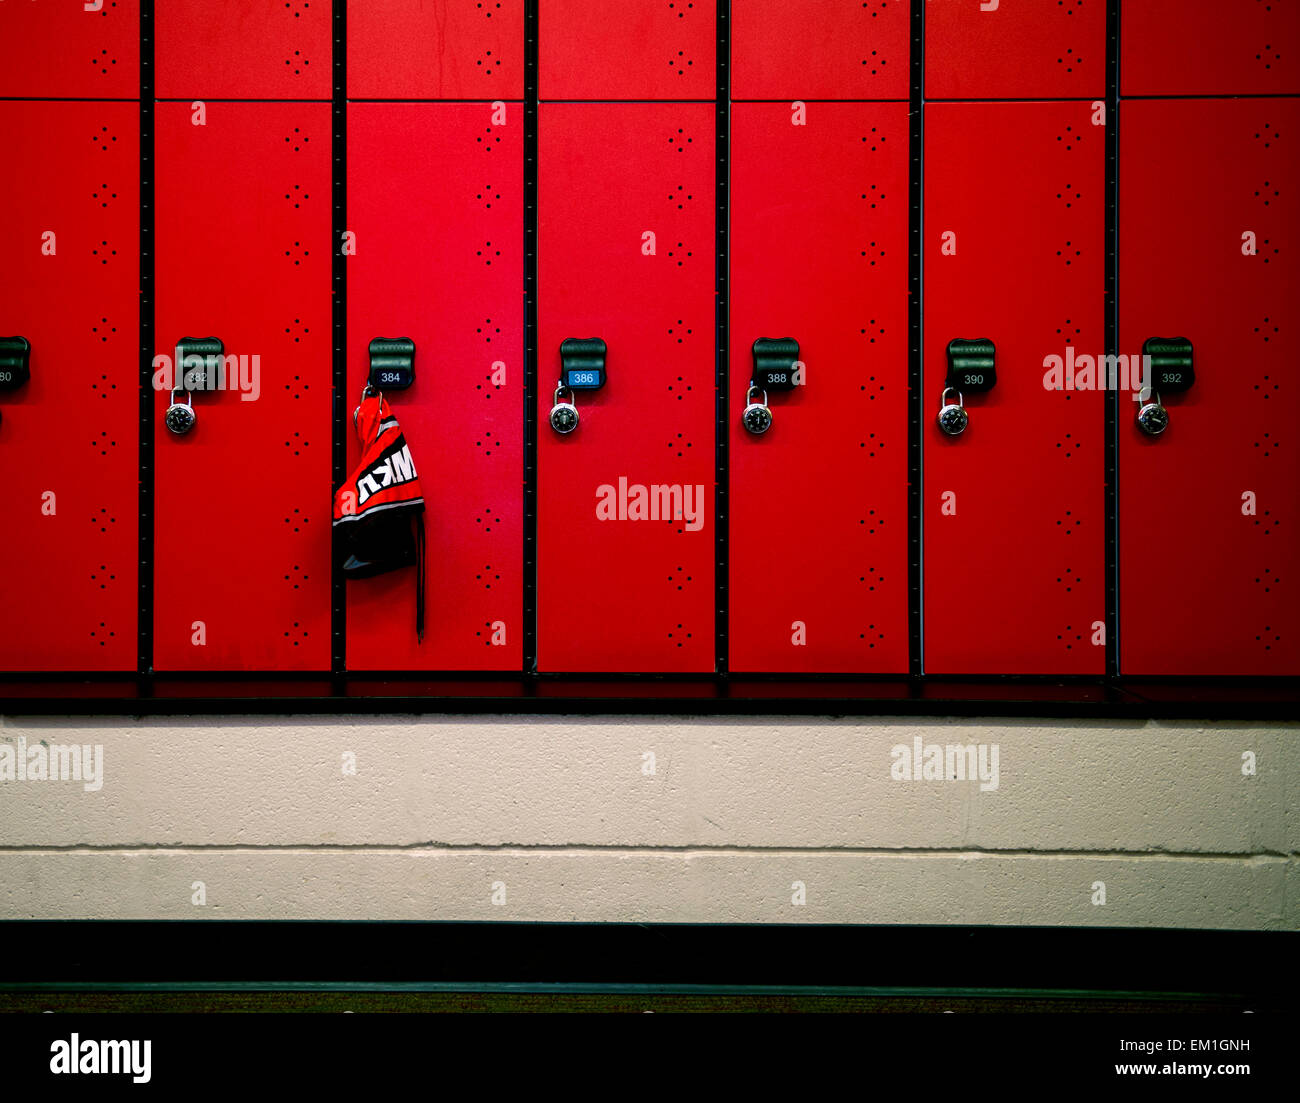 A lone swimsuit hangs out to dry in the Western Kentucky University Men's Swim Team locker room on Tuesday, - Stock Image